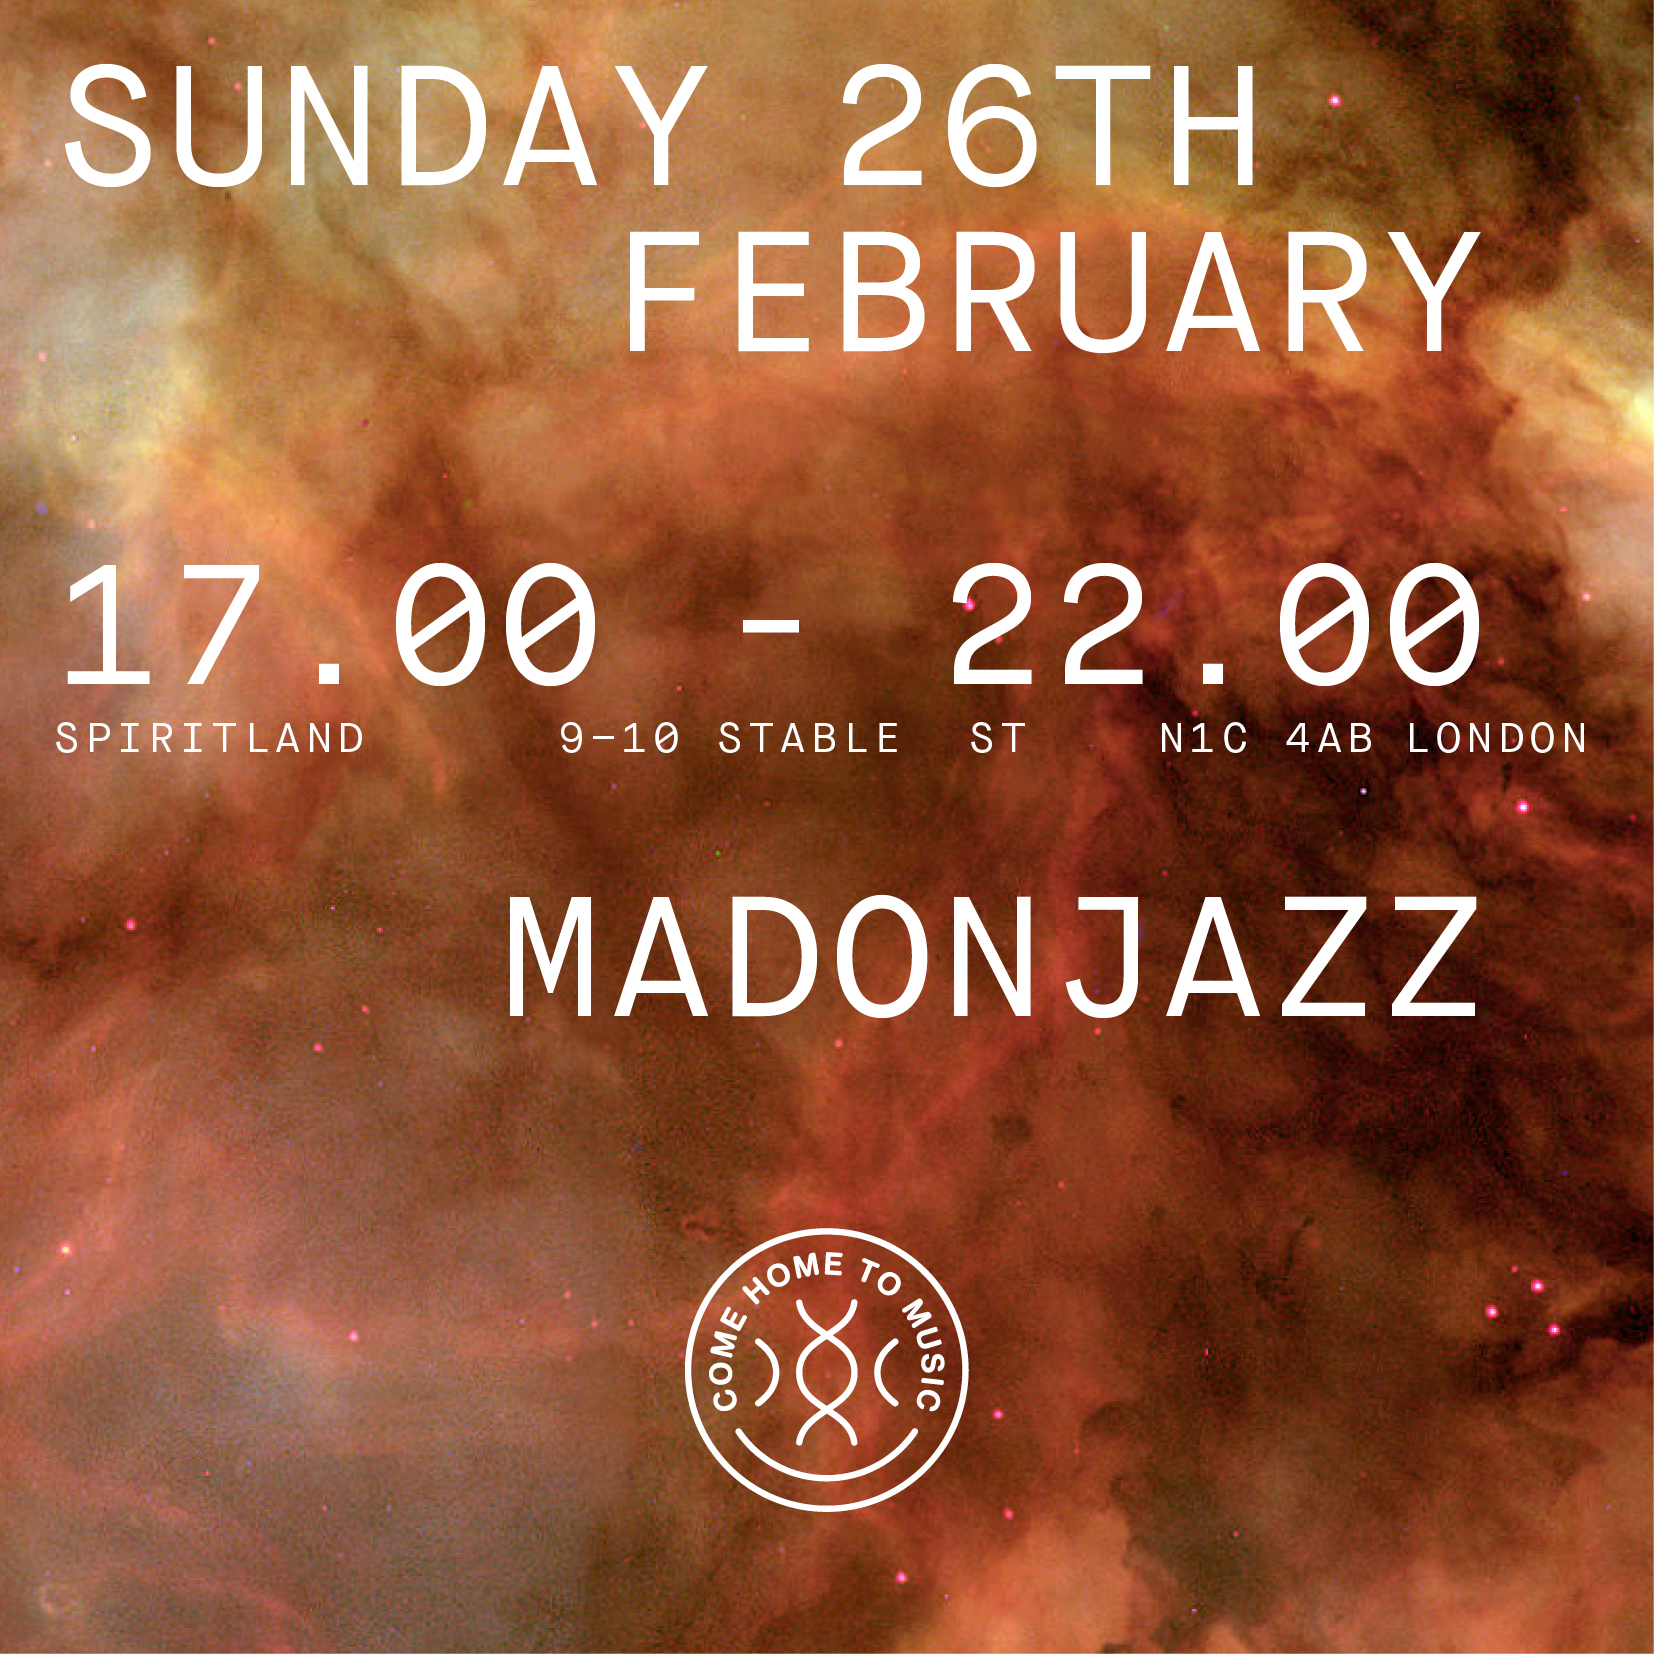 MADONJAZZ at Spiritland 26 FEB 2017 5-10pm